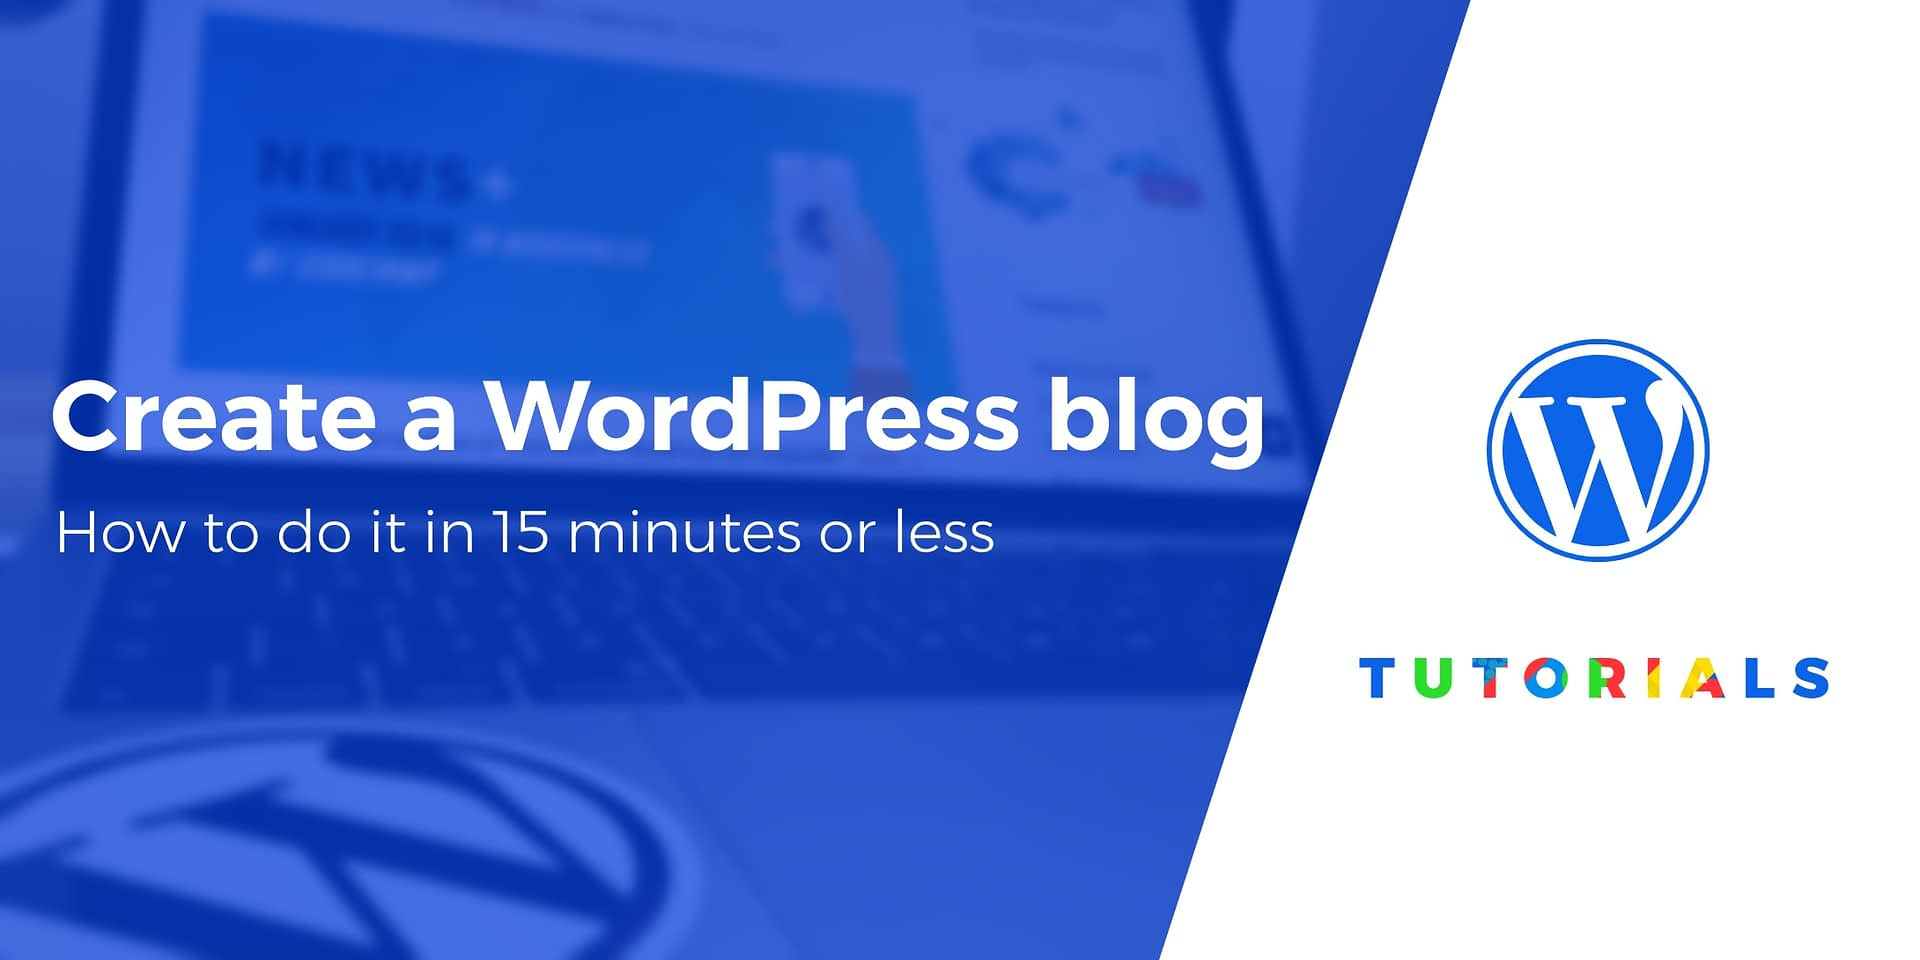 How to Create a WordPress Blog in 15 Minutes - Free Guide for 2019